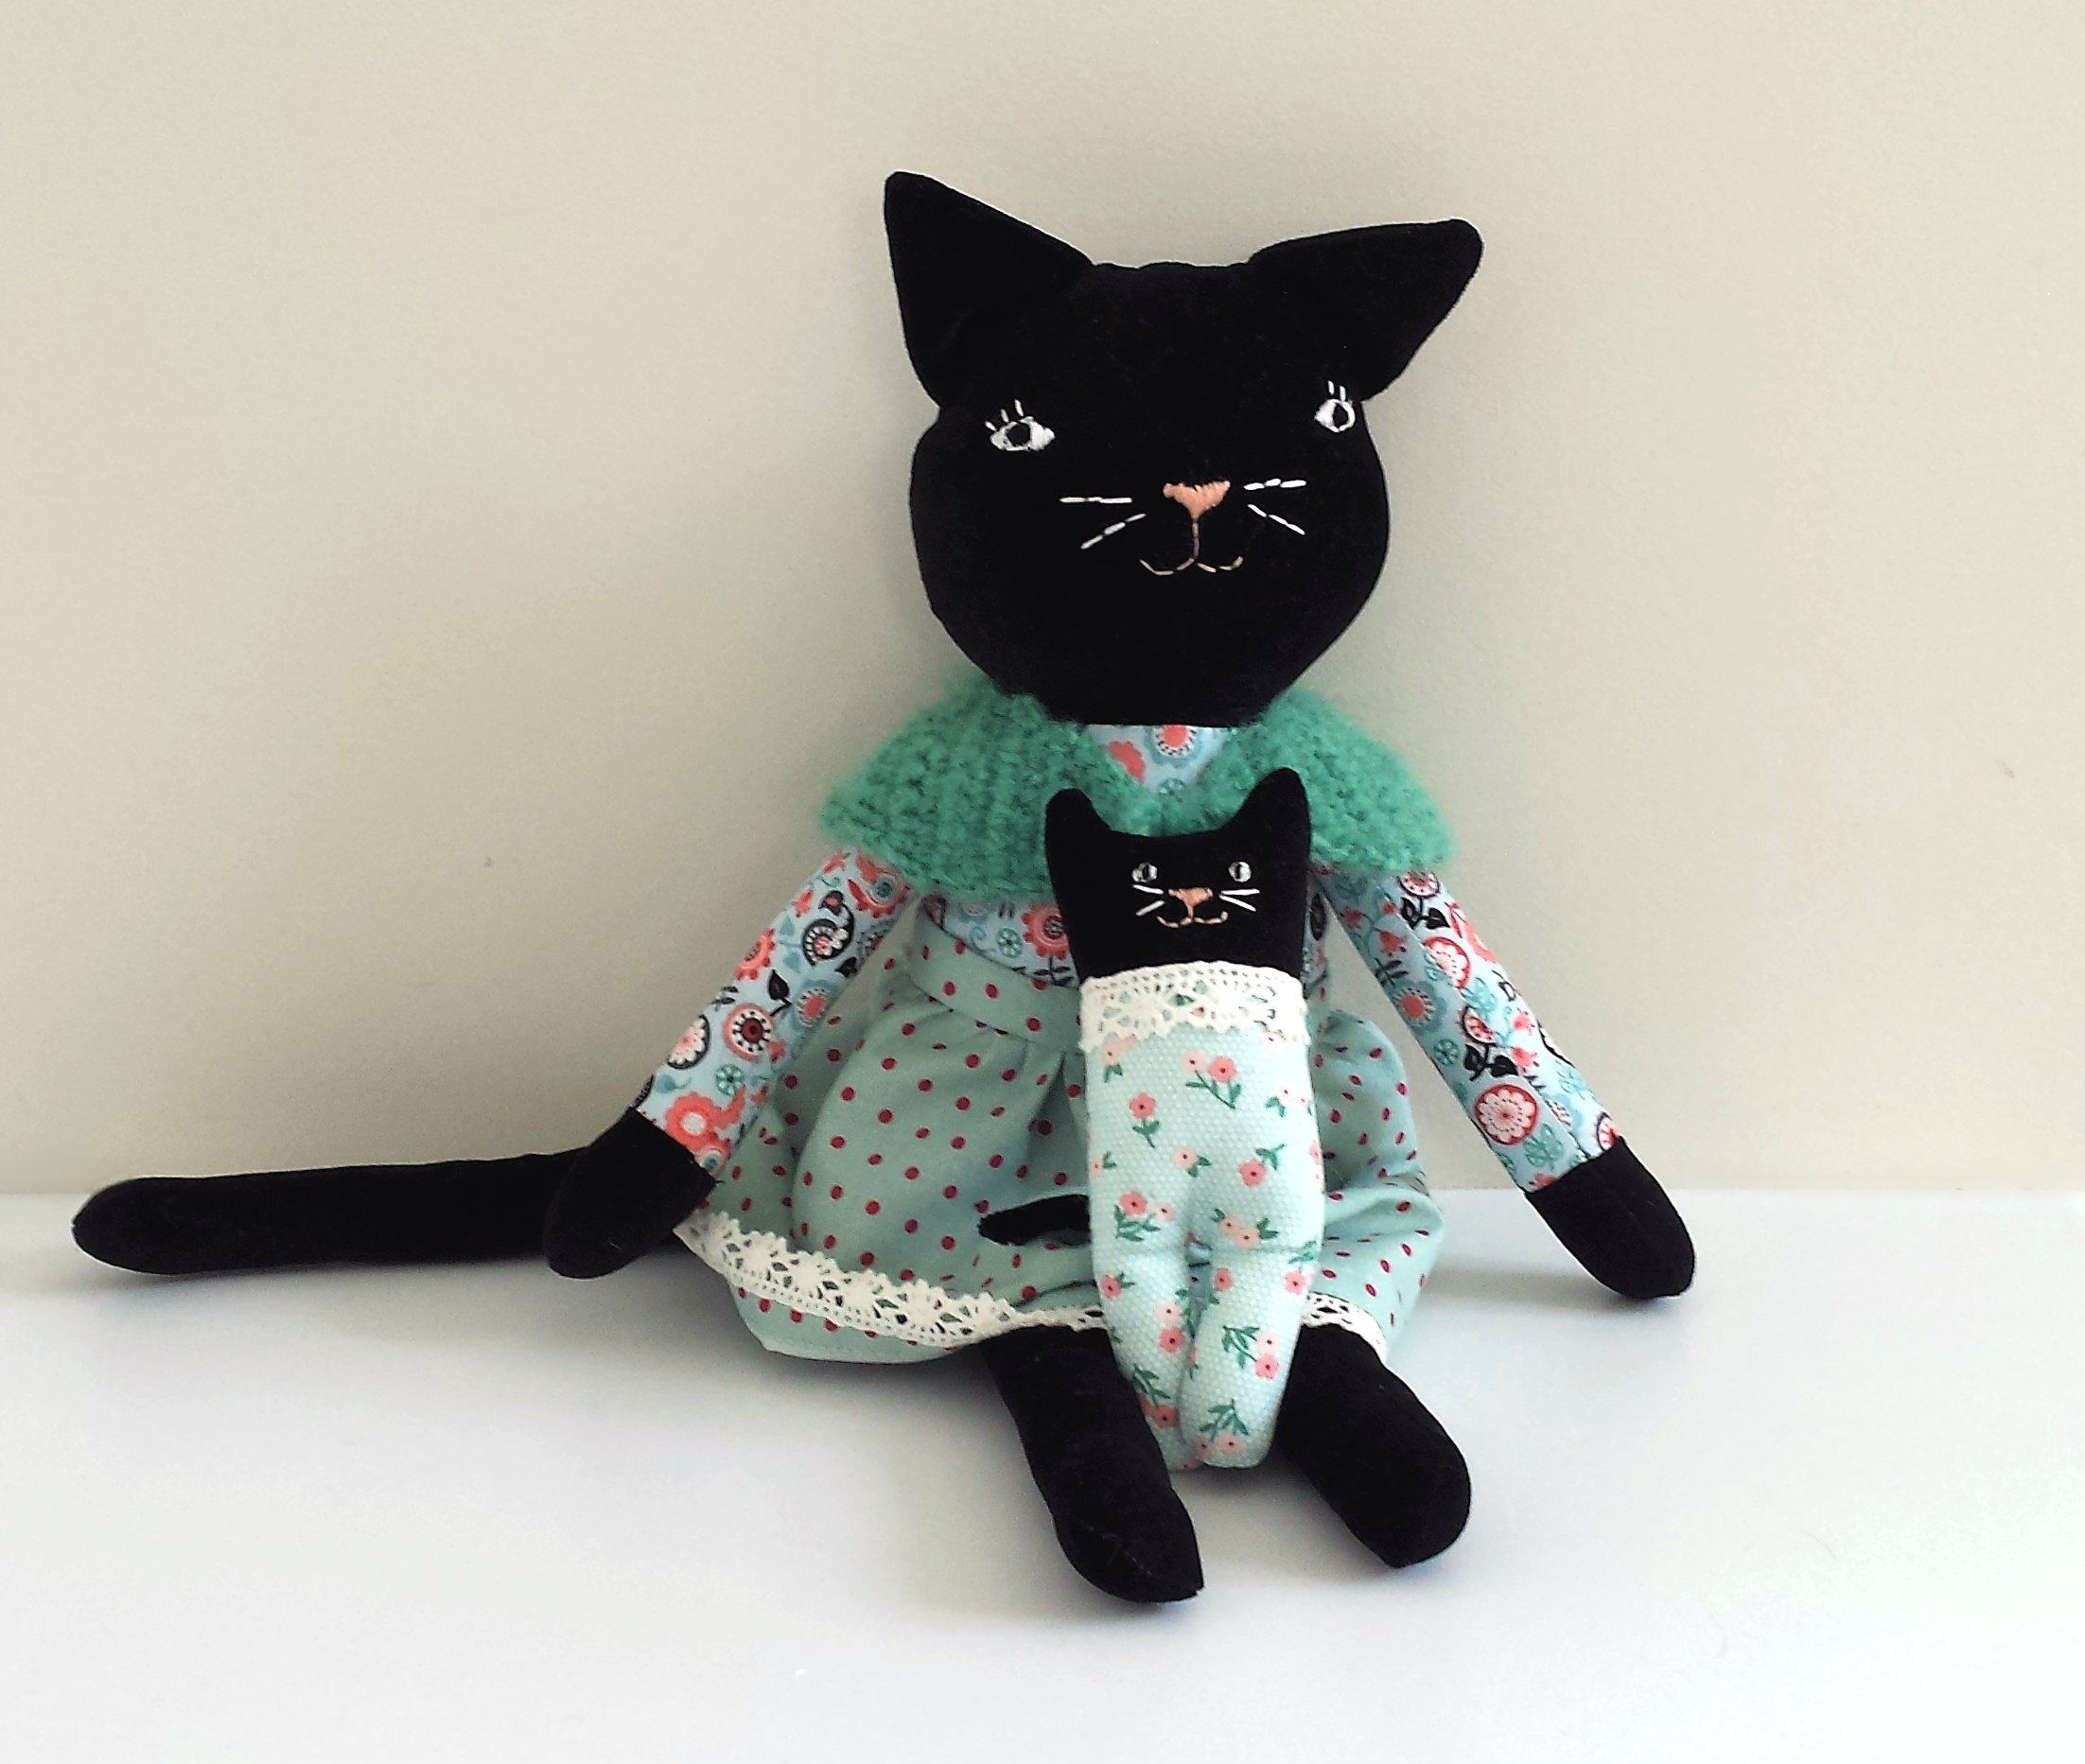 This one of a kind, handmade cat doll is named Moira.She has a black kitten that likes to hide in her quilted Christmas stocking. She measures approximately 43 cm (17 inches) tall from tip of her ears to her toes. Her kitten measures approximately 15 cm (6 inc) tall.Moira wears a removable skirt and a hand made crochet wrap with pompoms on the end of the ties.The kitten has a soft faux fur tail. This doll is suitable for a child over the age of 4 years old and require ...